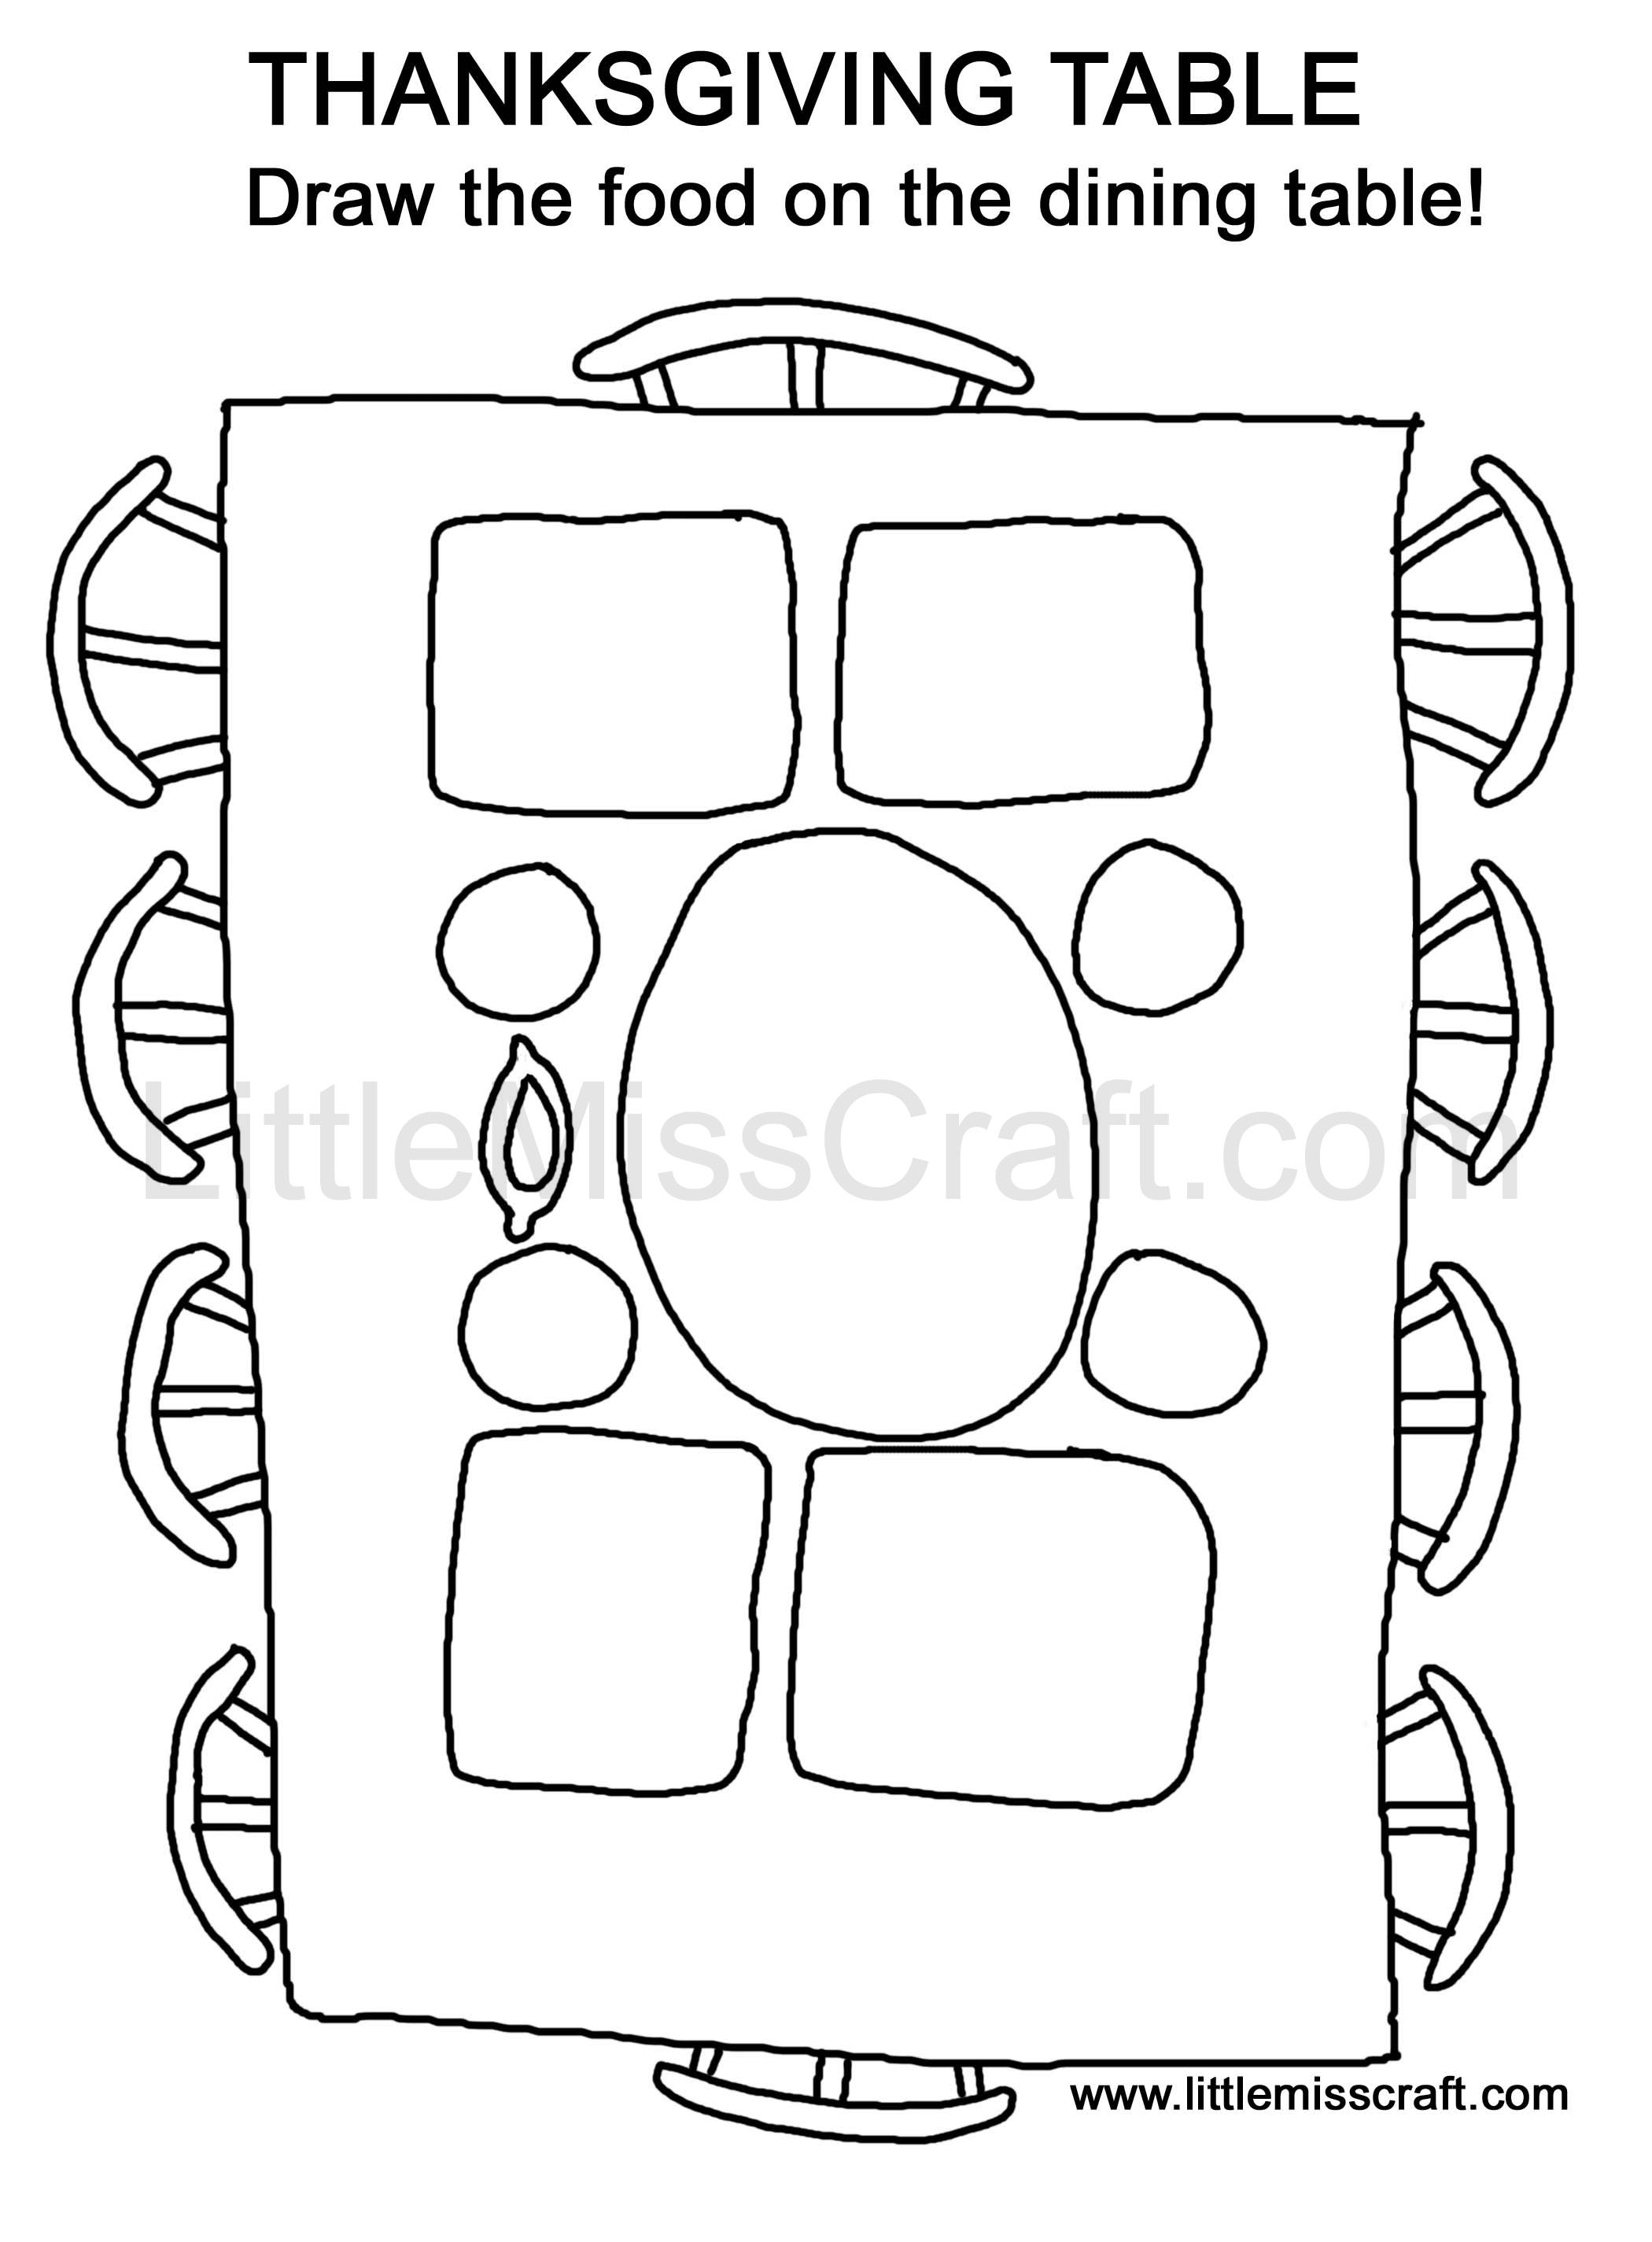 Crafts Thanksgiving Table Doodle Coloring Page